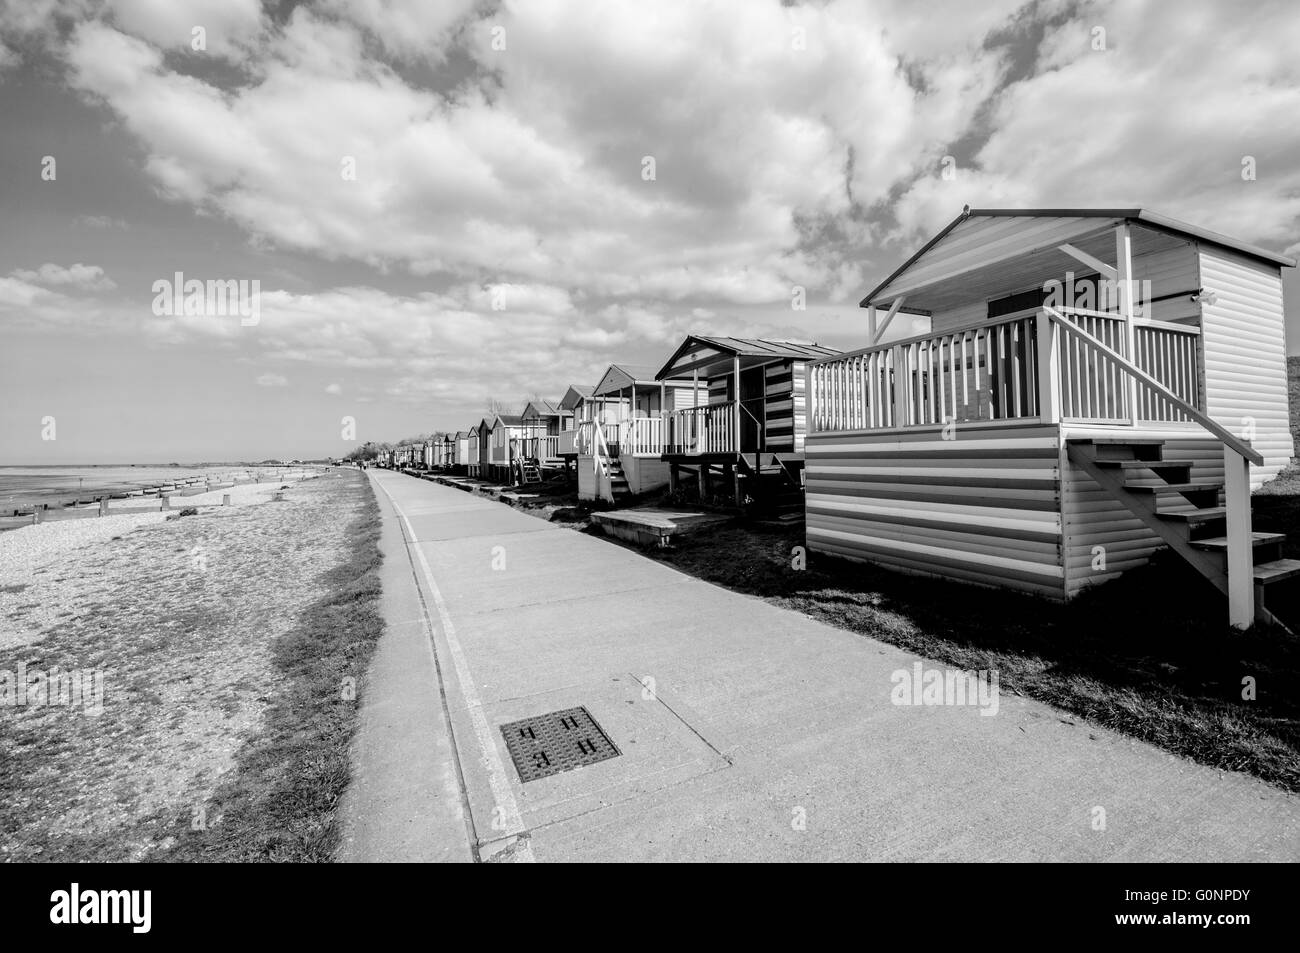 Huts along the beach in Whitstable, Kent, England Stock Photo